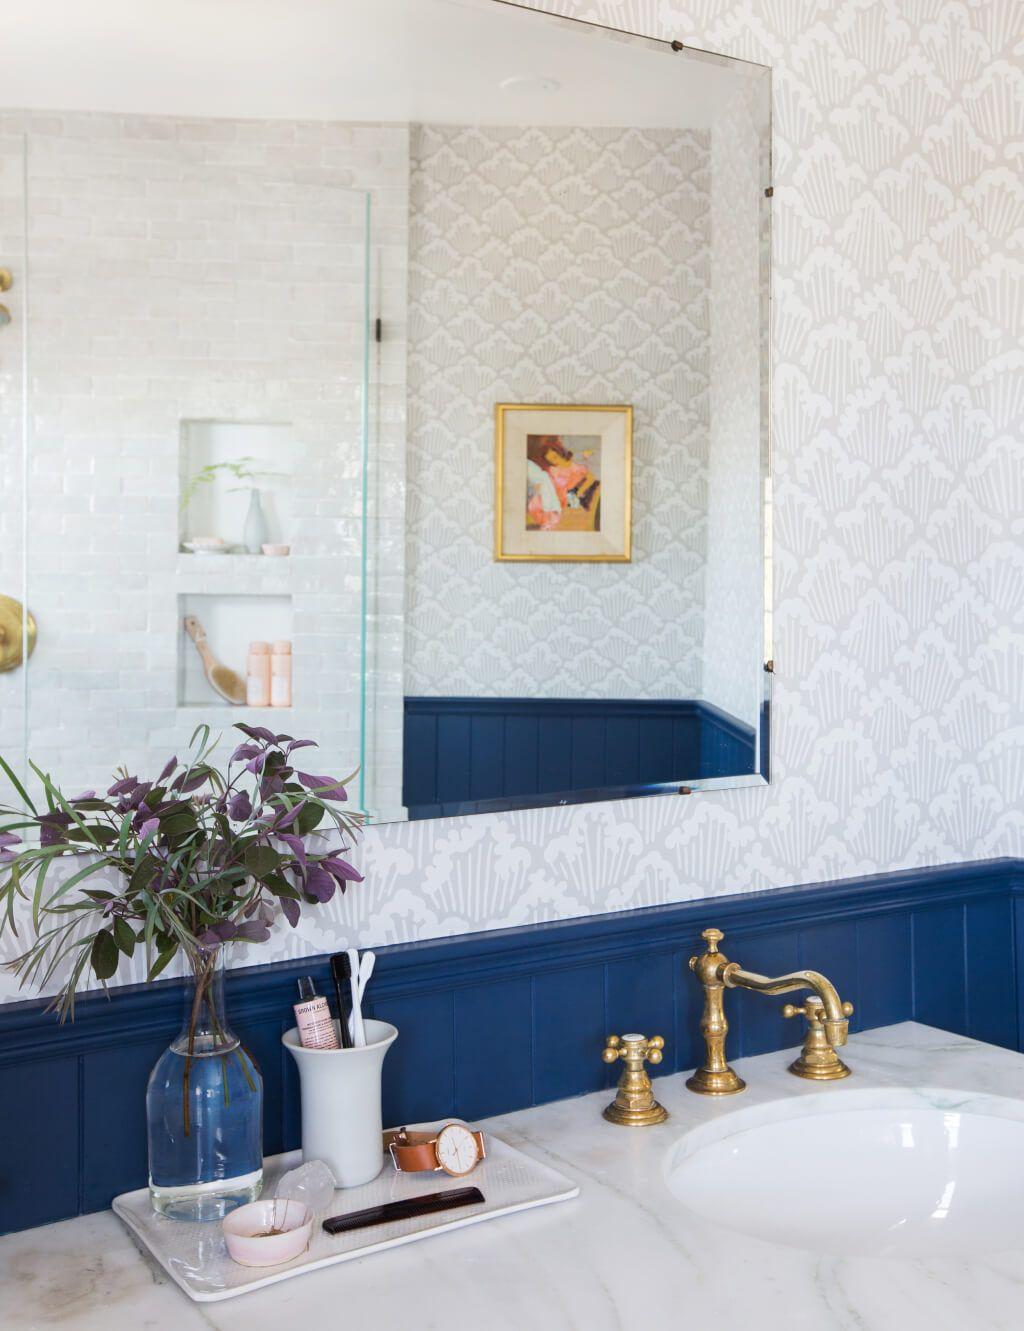 Our Classic Modern Master Bathroom Reveal | English cottages, Master ...